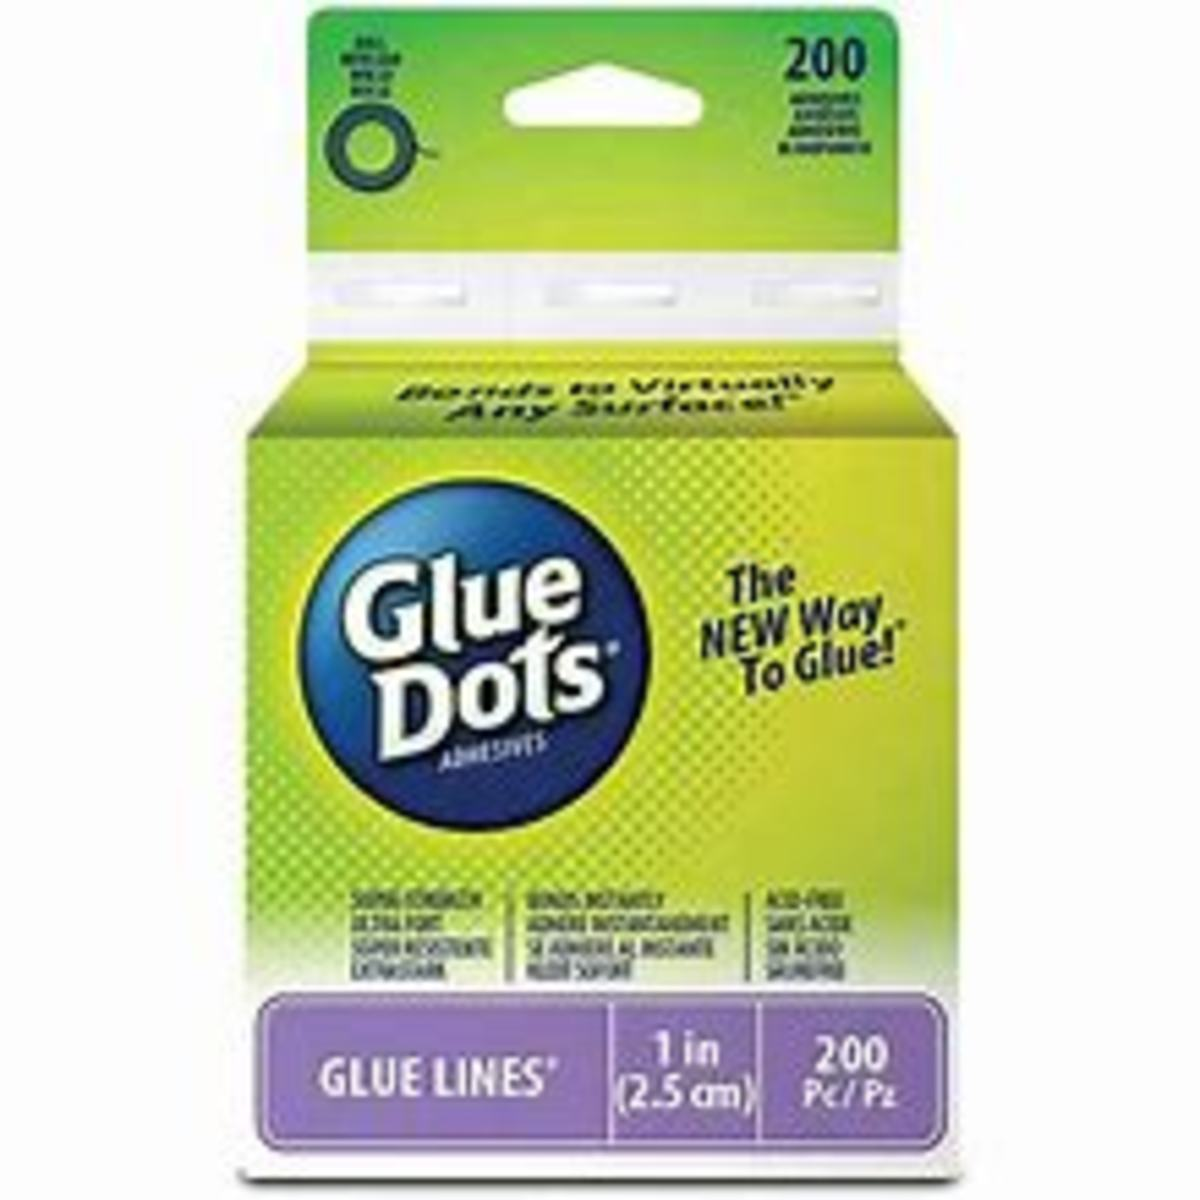 Glue dots come on sheets, rolls and in dot rollers